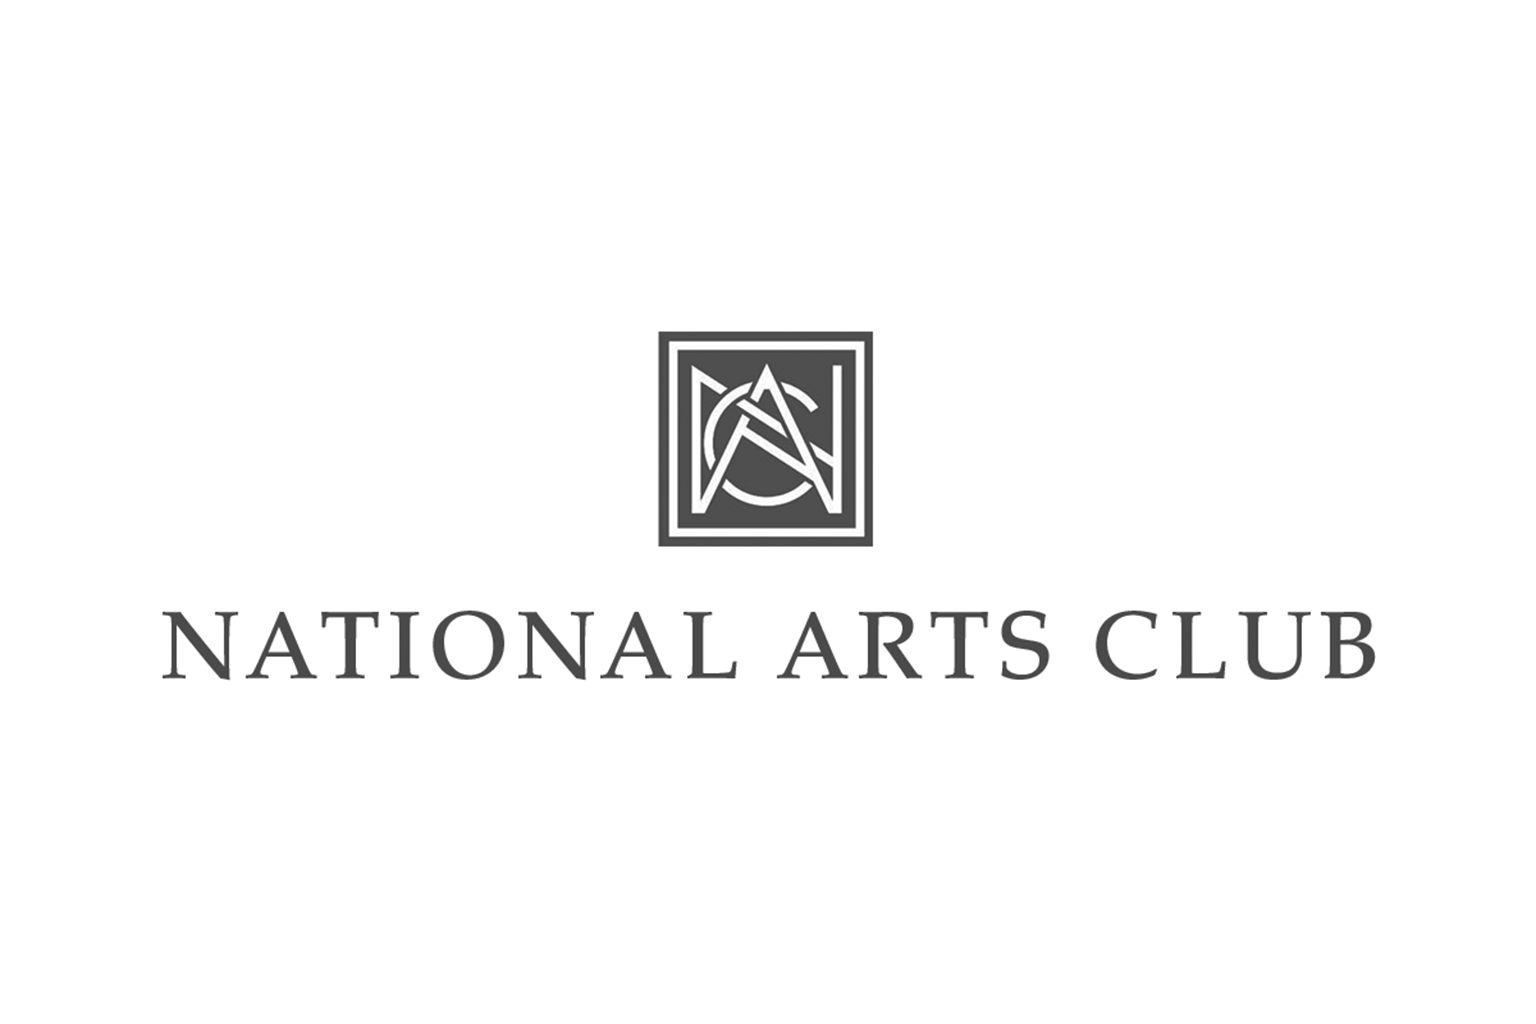 national-arts-club-logo.png